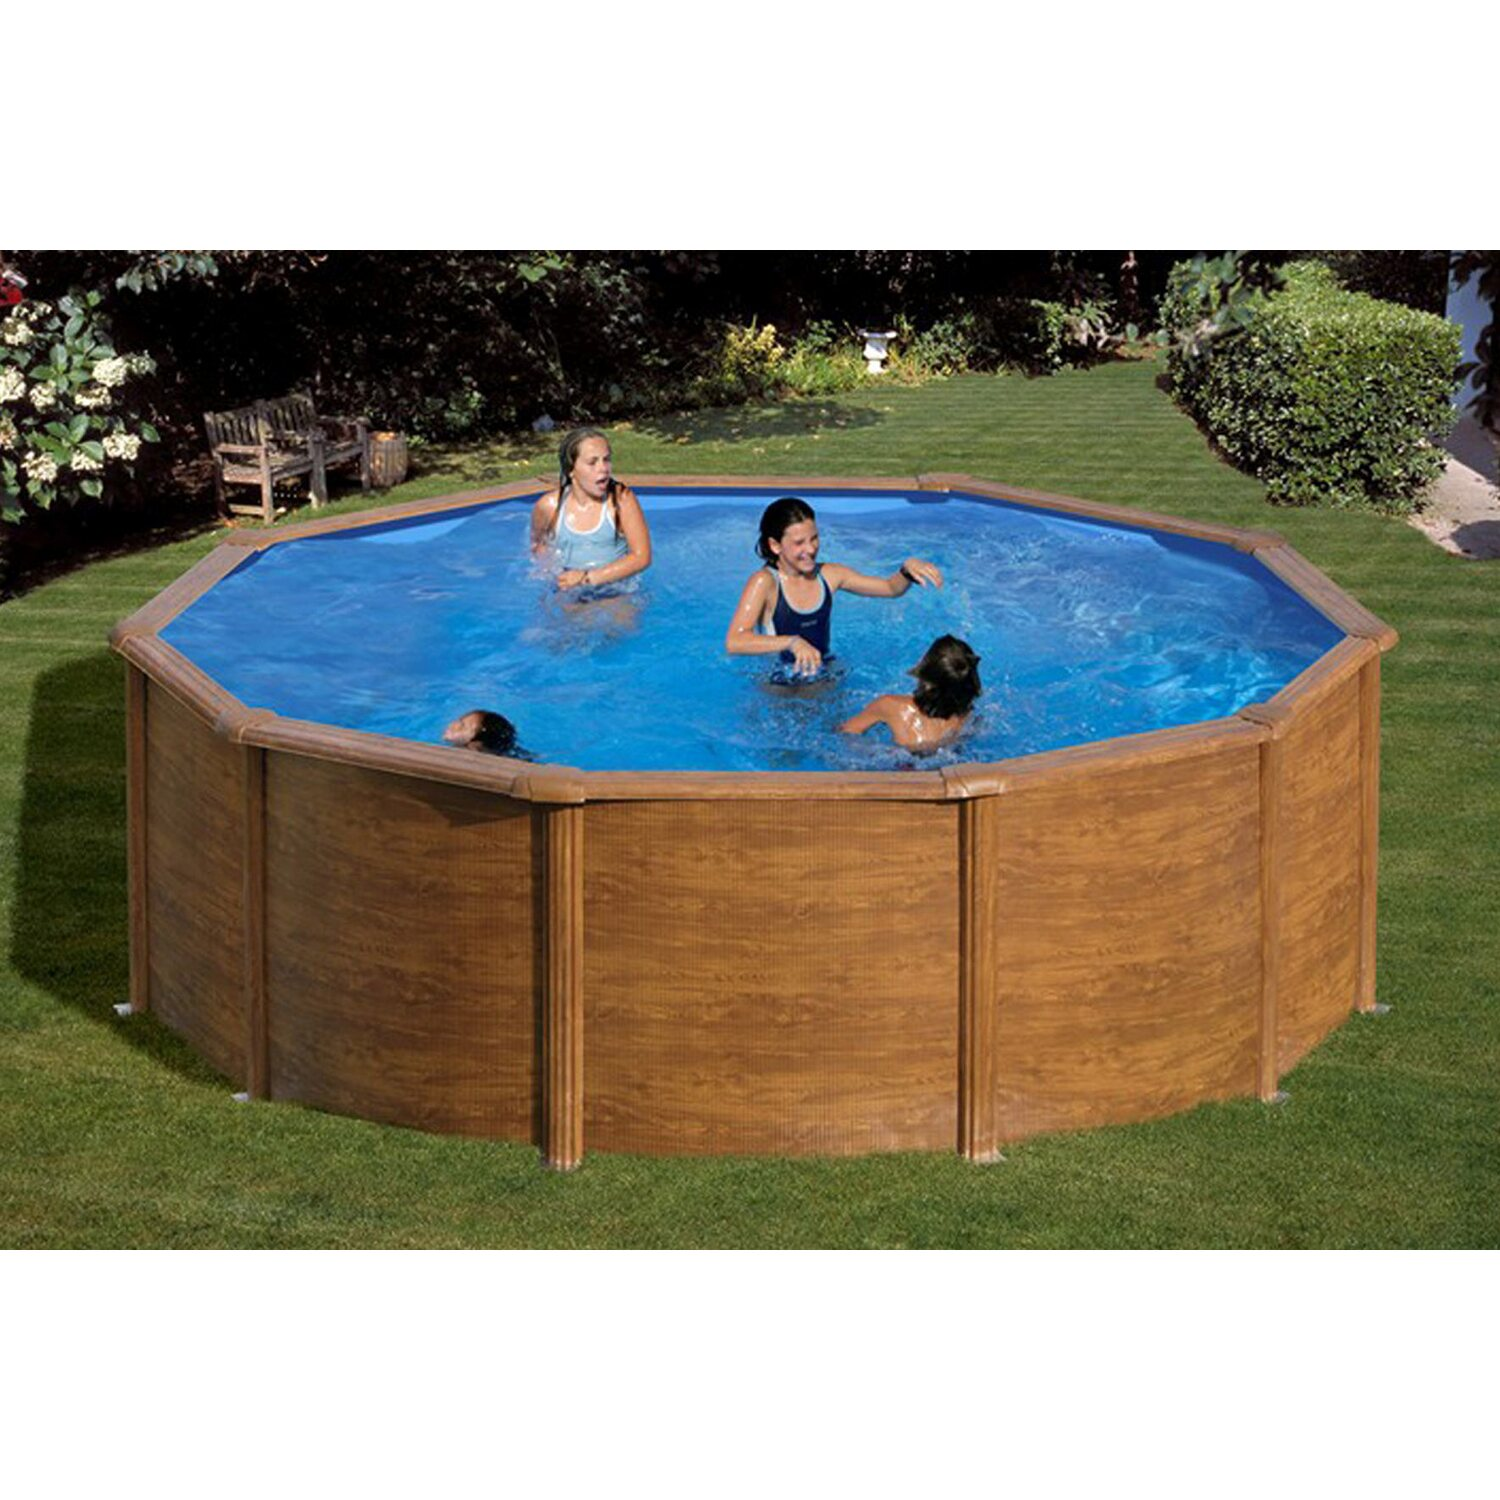 Summer fun stahlwand pool set holz dekor rhodos for Obi holzpool